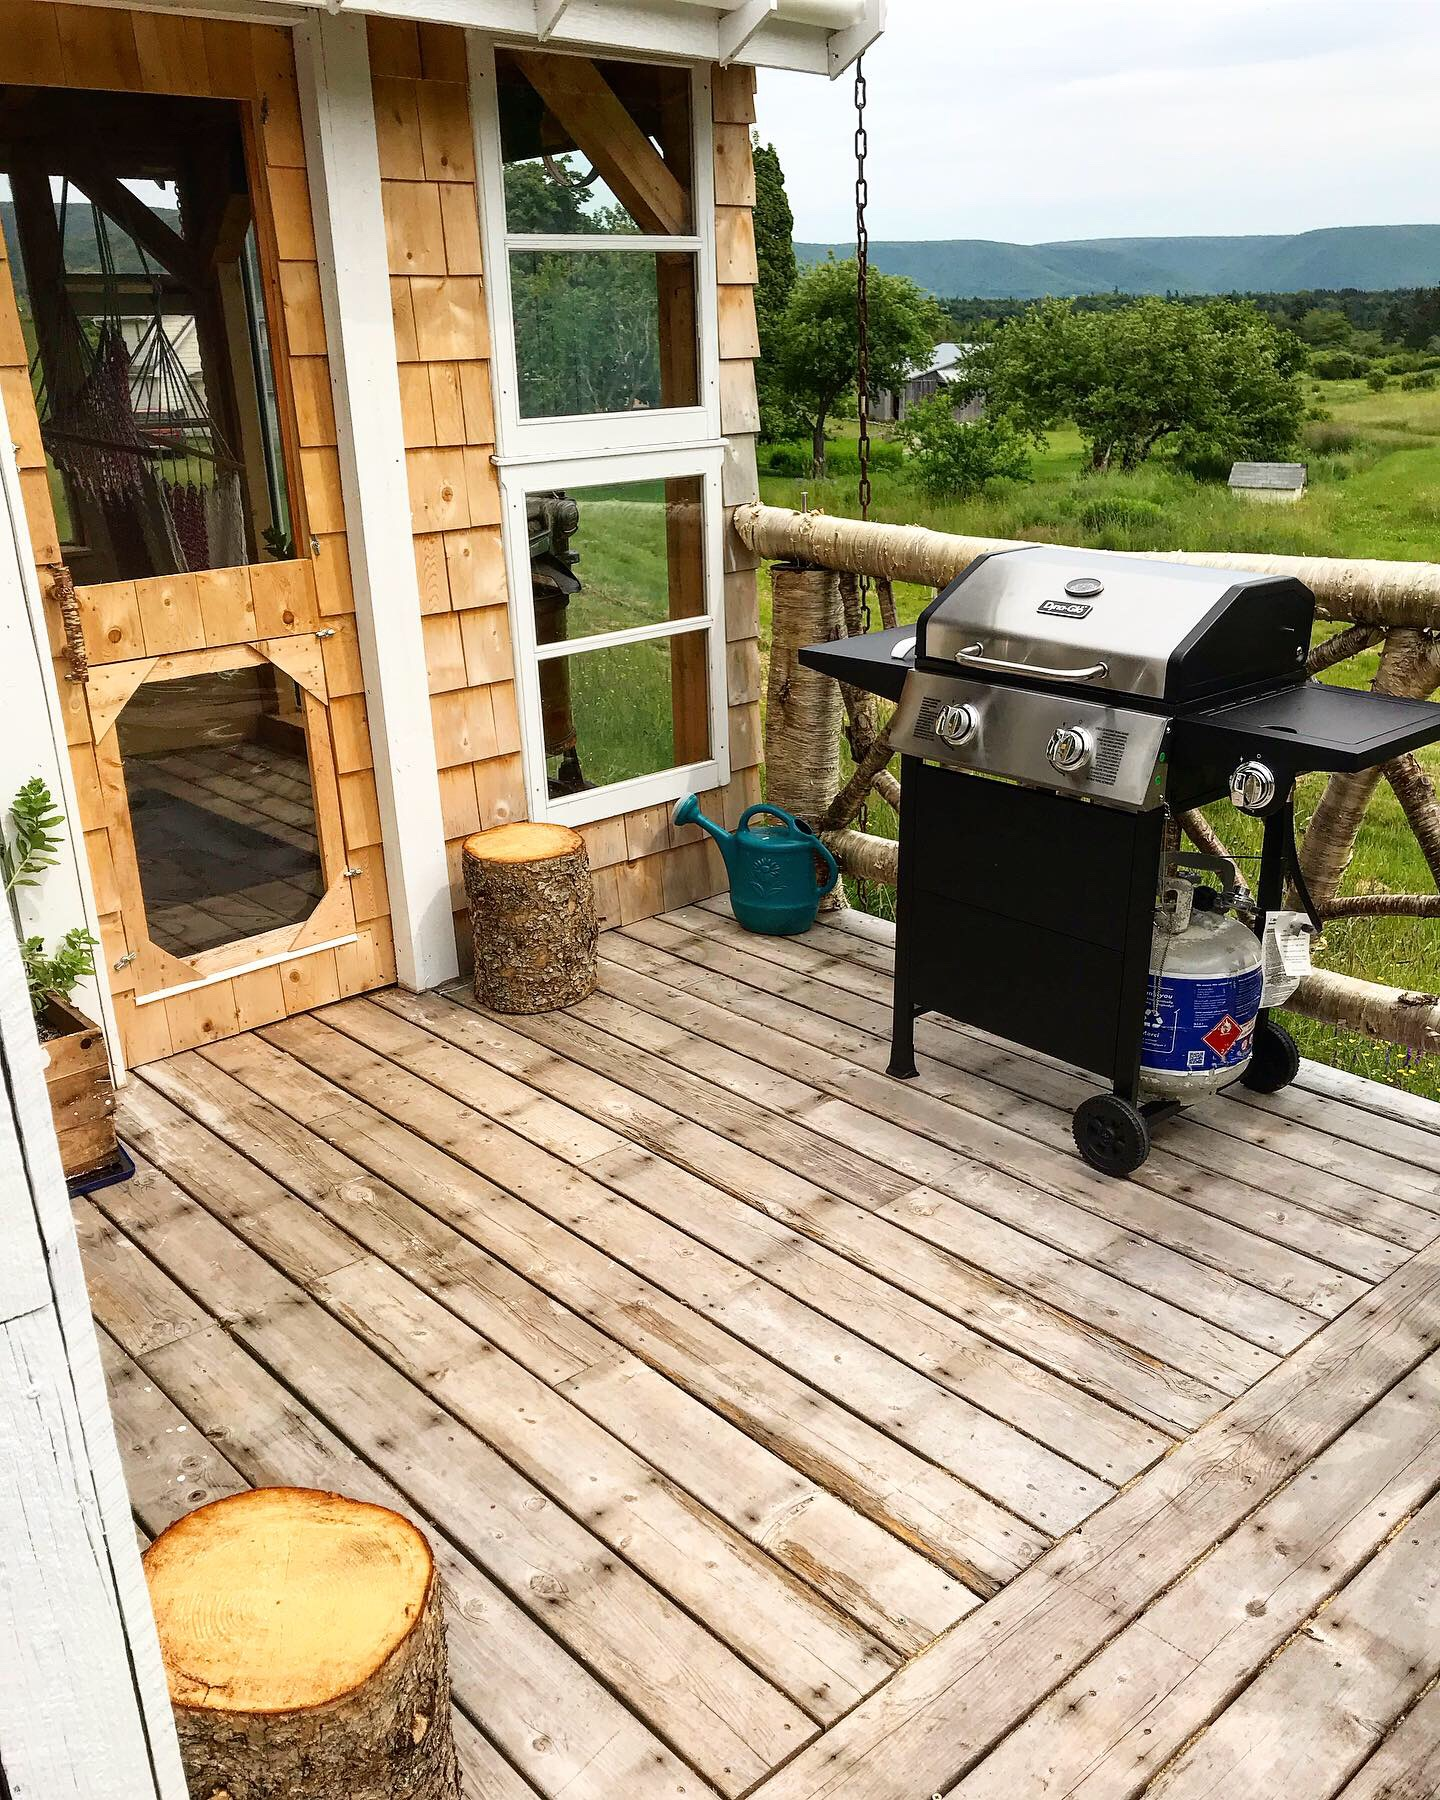 BBQ on deck next to Sunroom